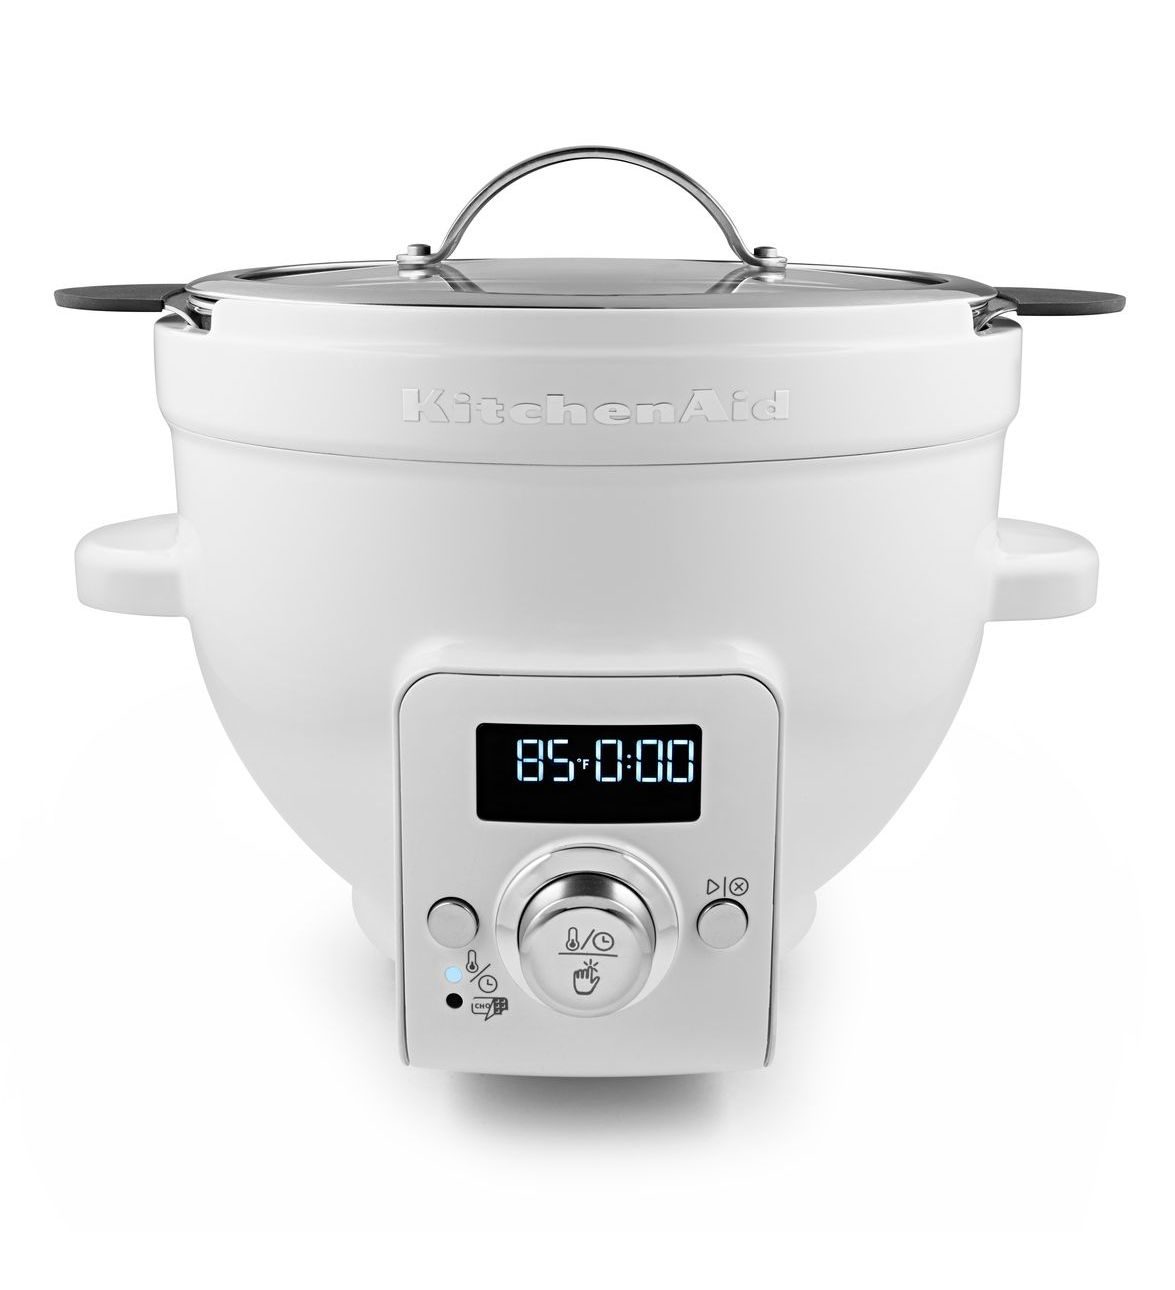 KitchenAid® Precise Heat Mixing Bowl